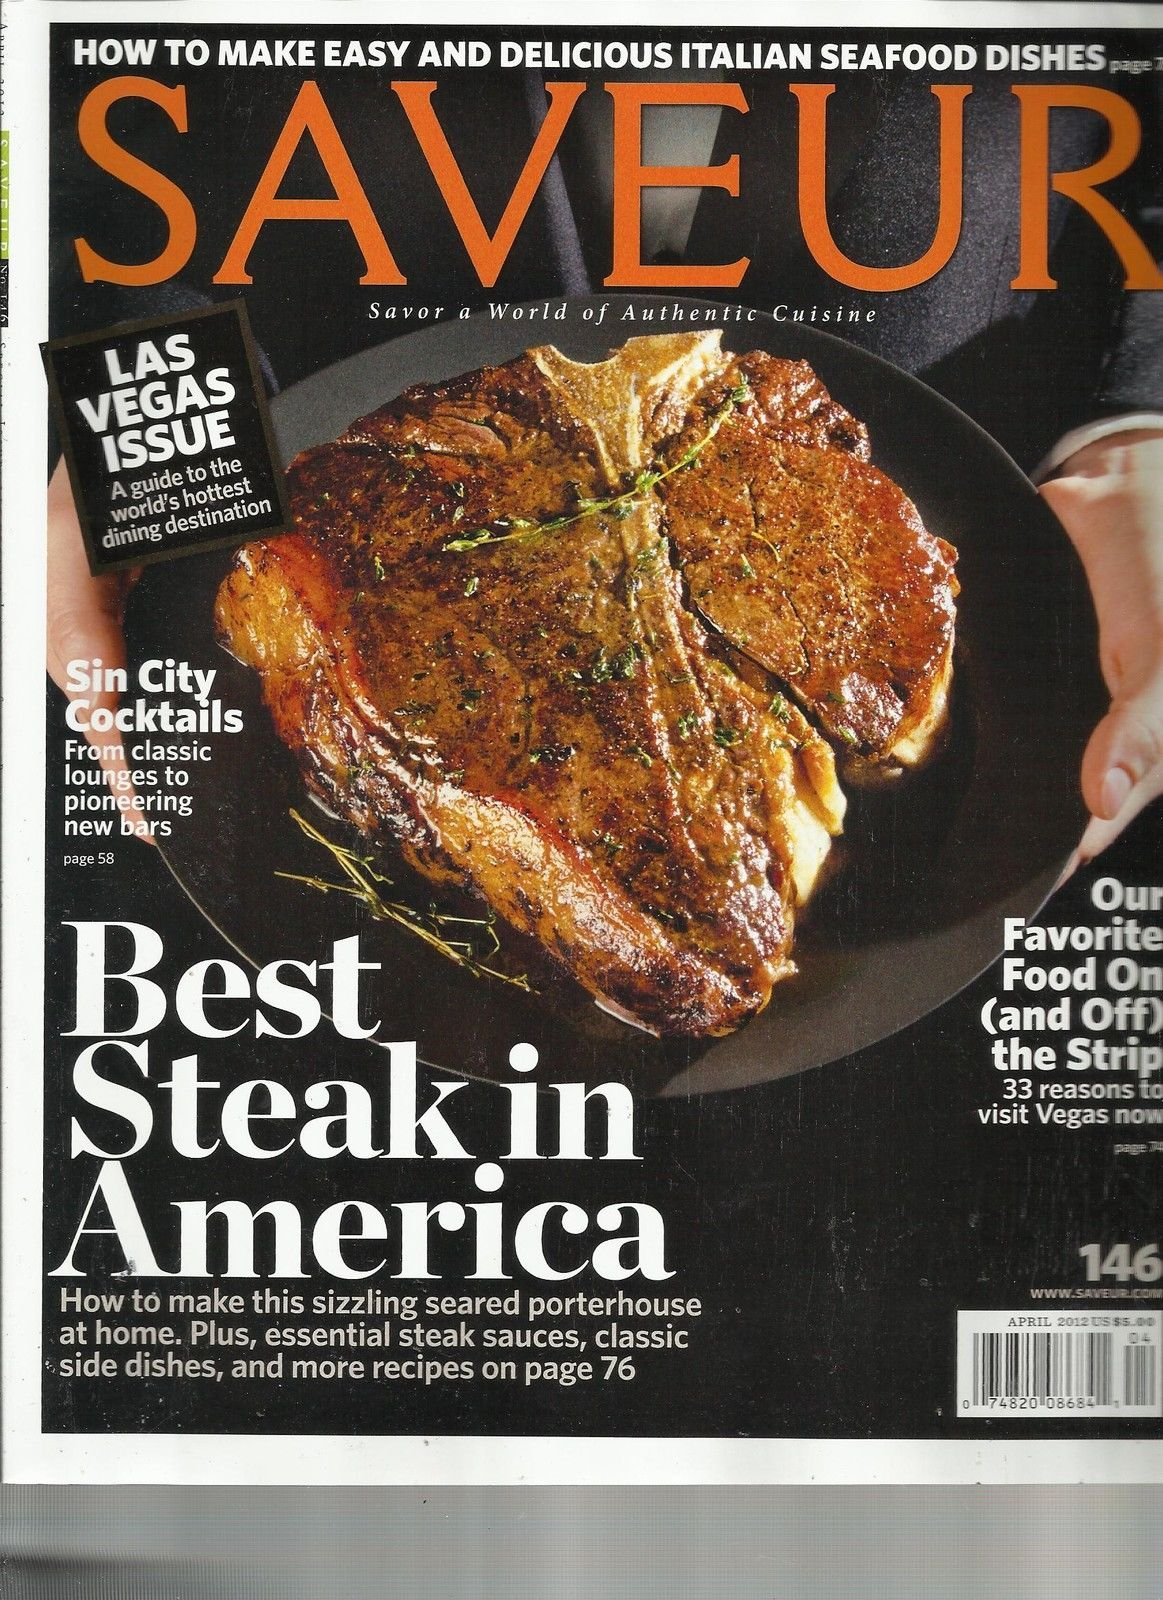 SAVEUR, APRIL, 2012 (LAS VEGAS ISSUE) BEST STEAK IN AMERICA (SIN CITY COCKTAILS